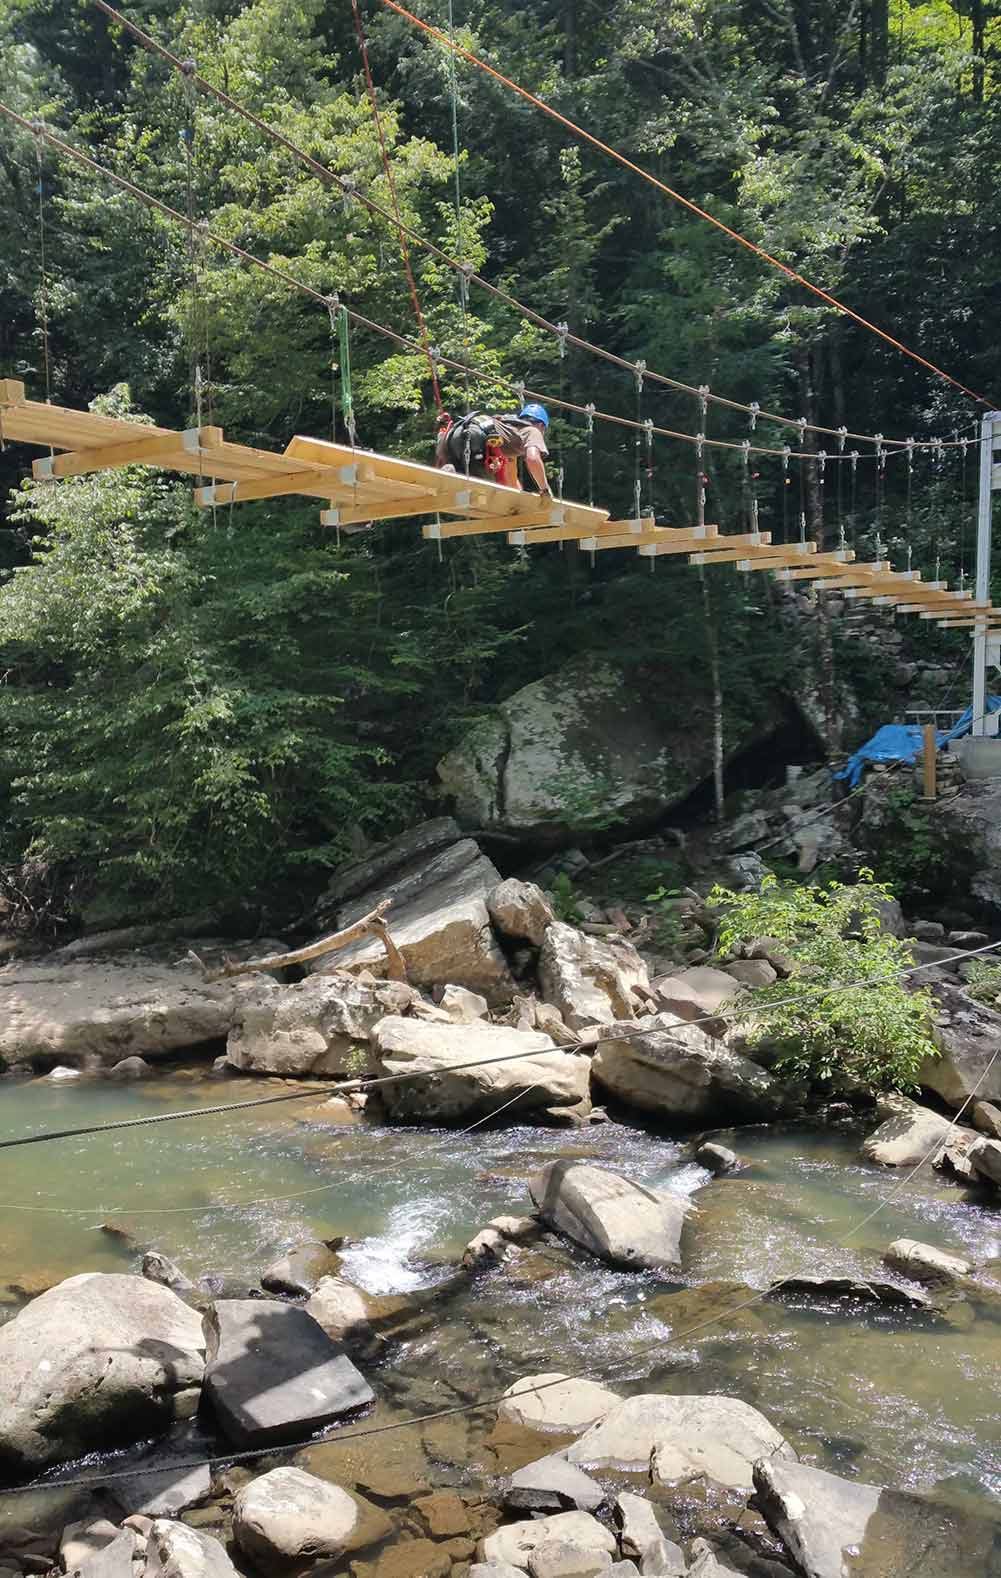 Tethered with a safety line, a worker secures treads to the Big Soddy Bridge during the summer of 2015